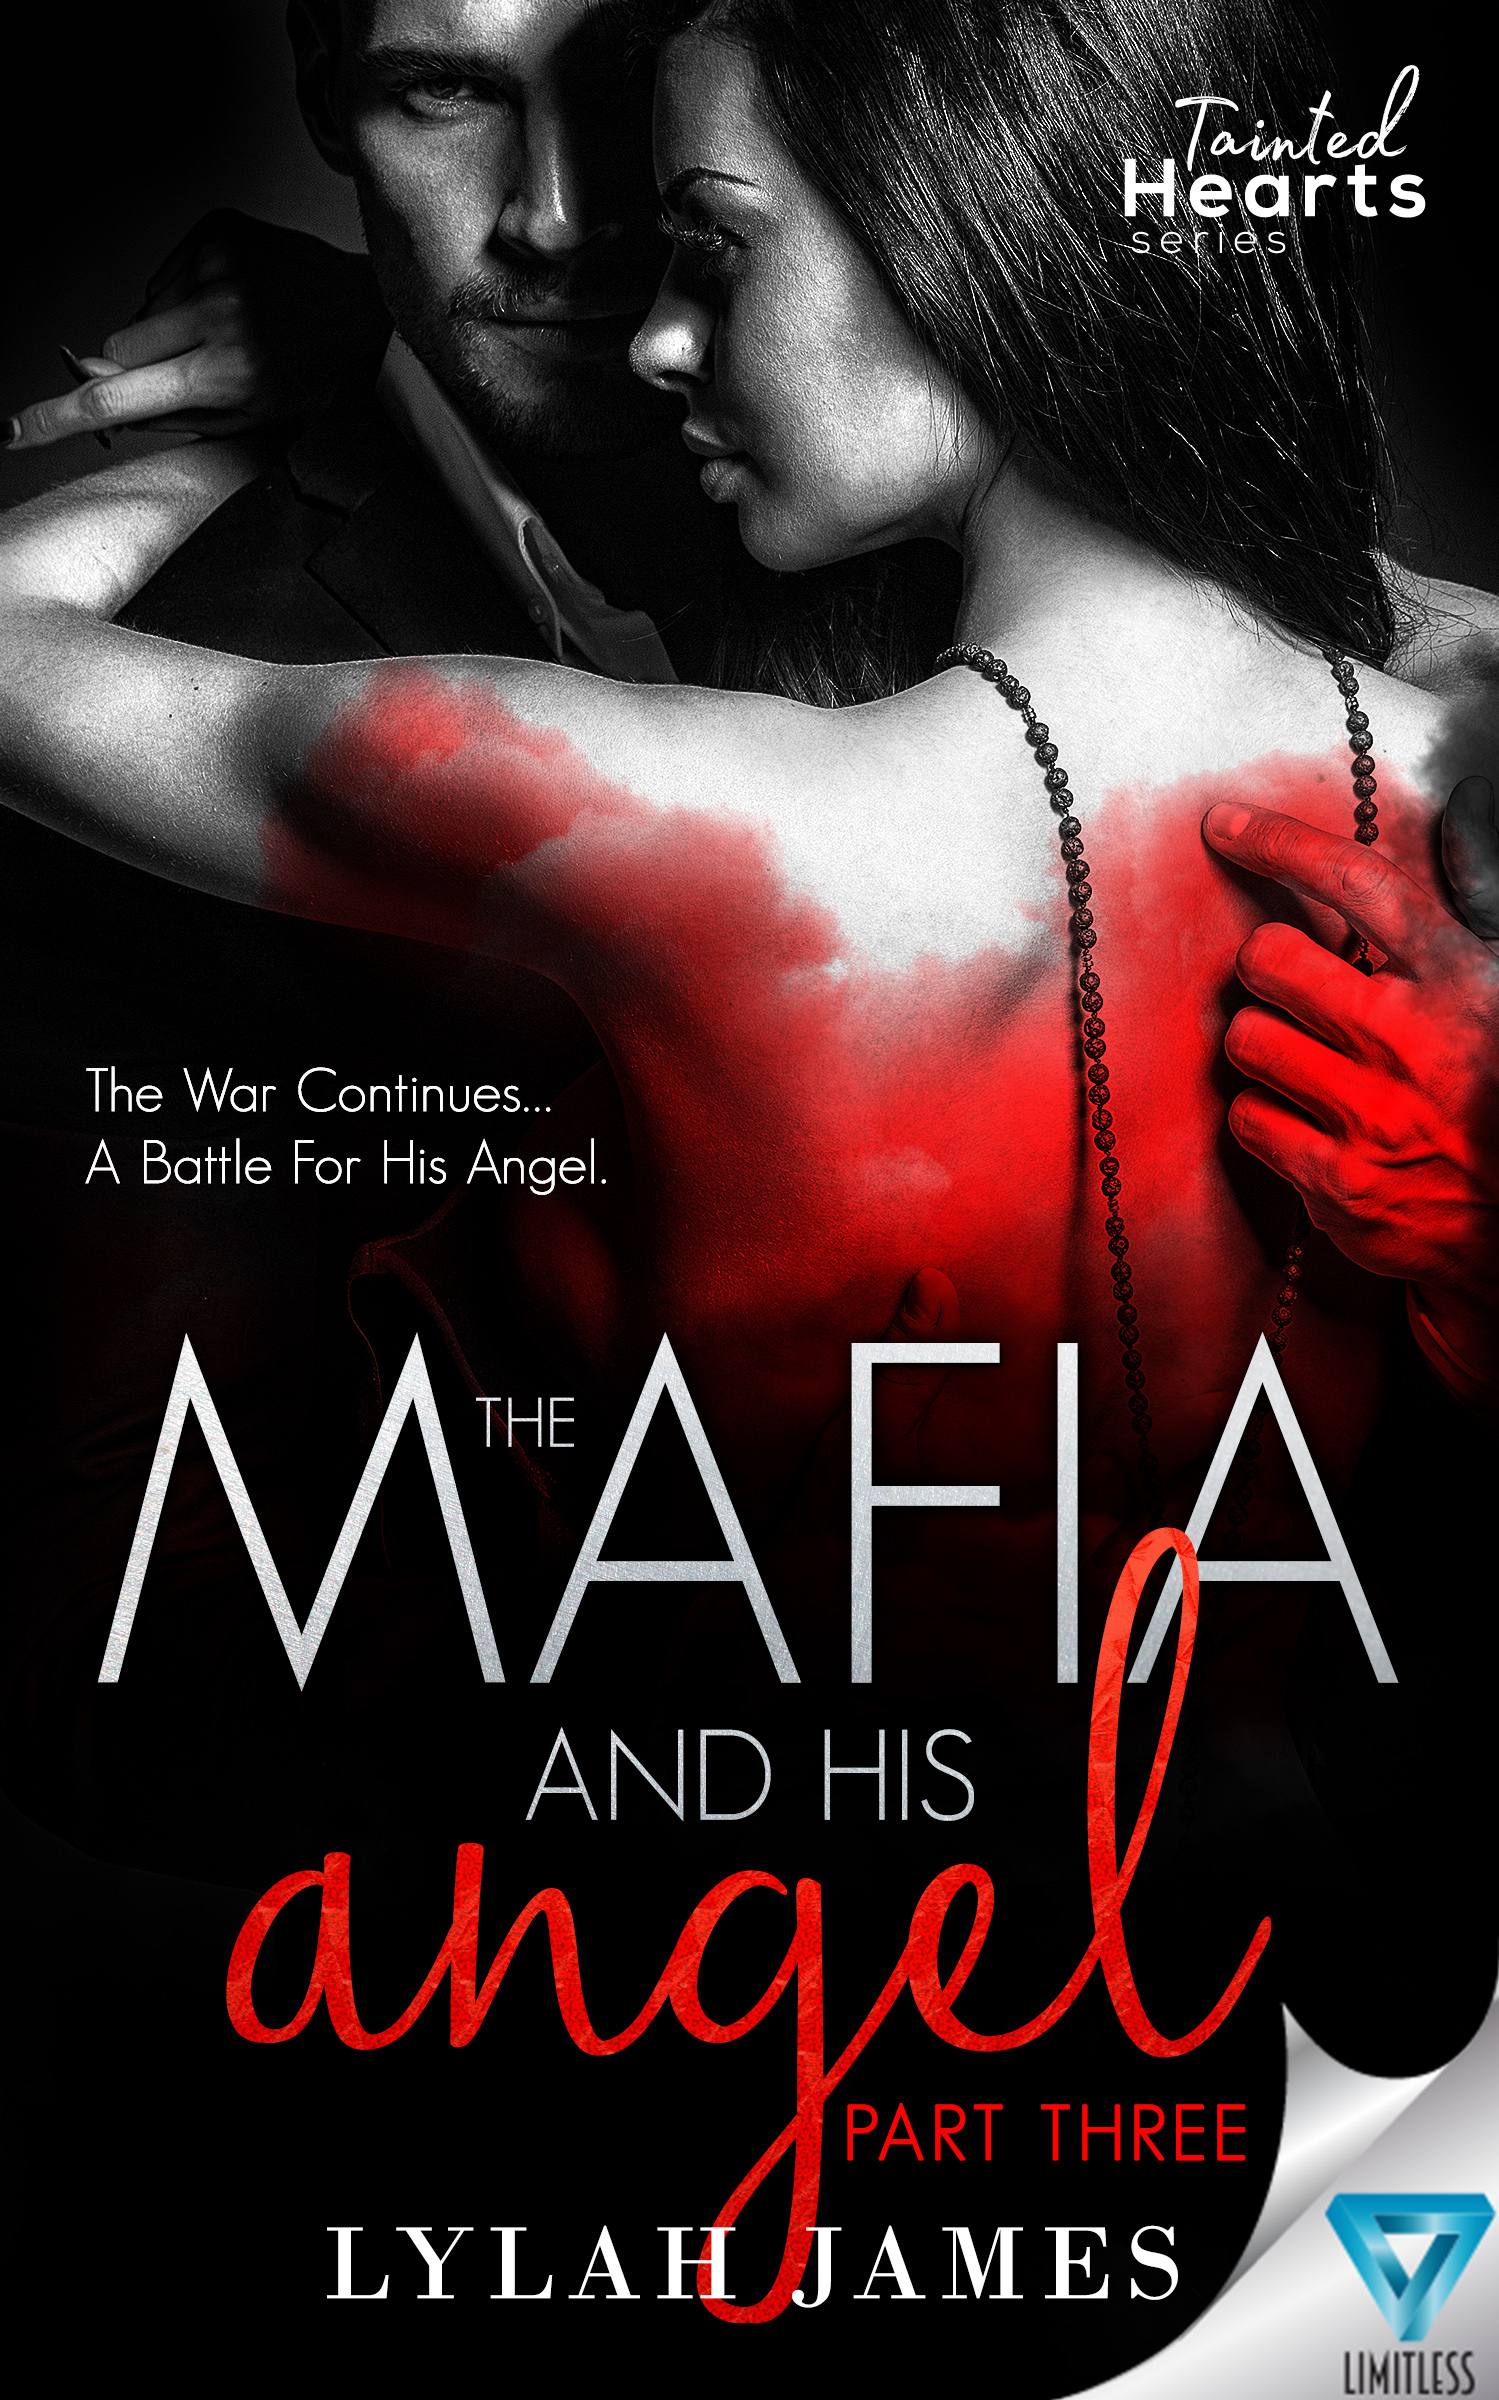 Lylah James - Tainted Hearts 3 - The Mafia and His Angel Part 3